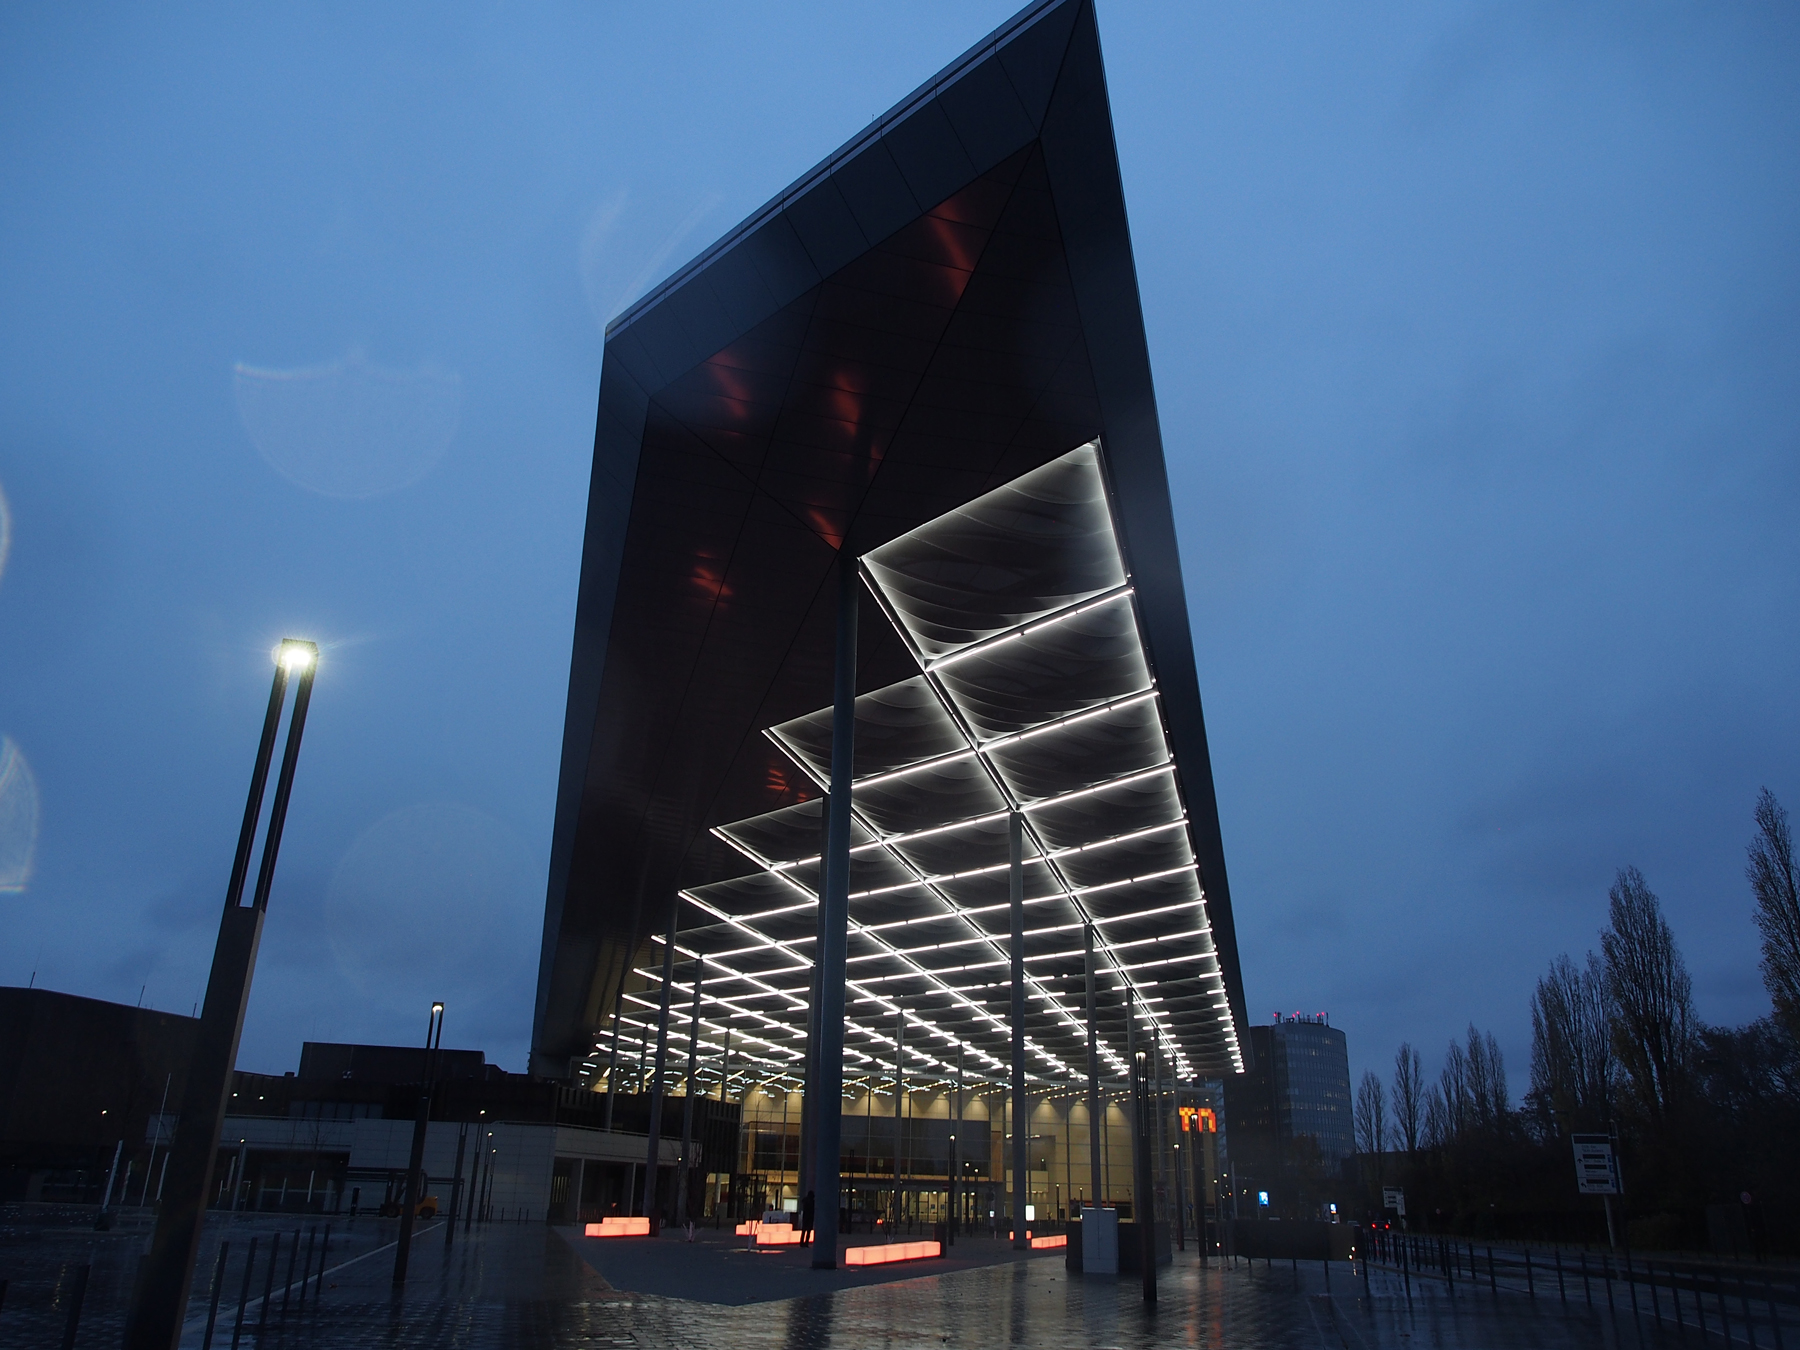 Messe Duesseldorf Roof Entrance South Led Linear